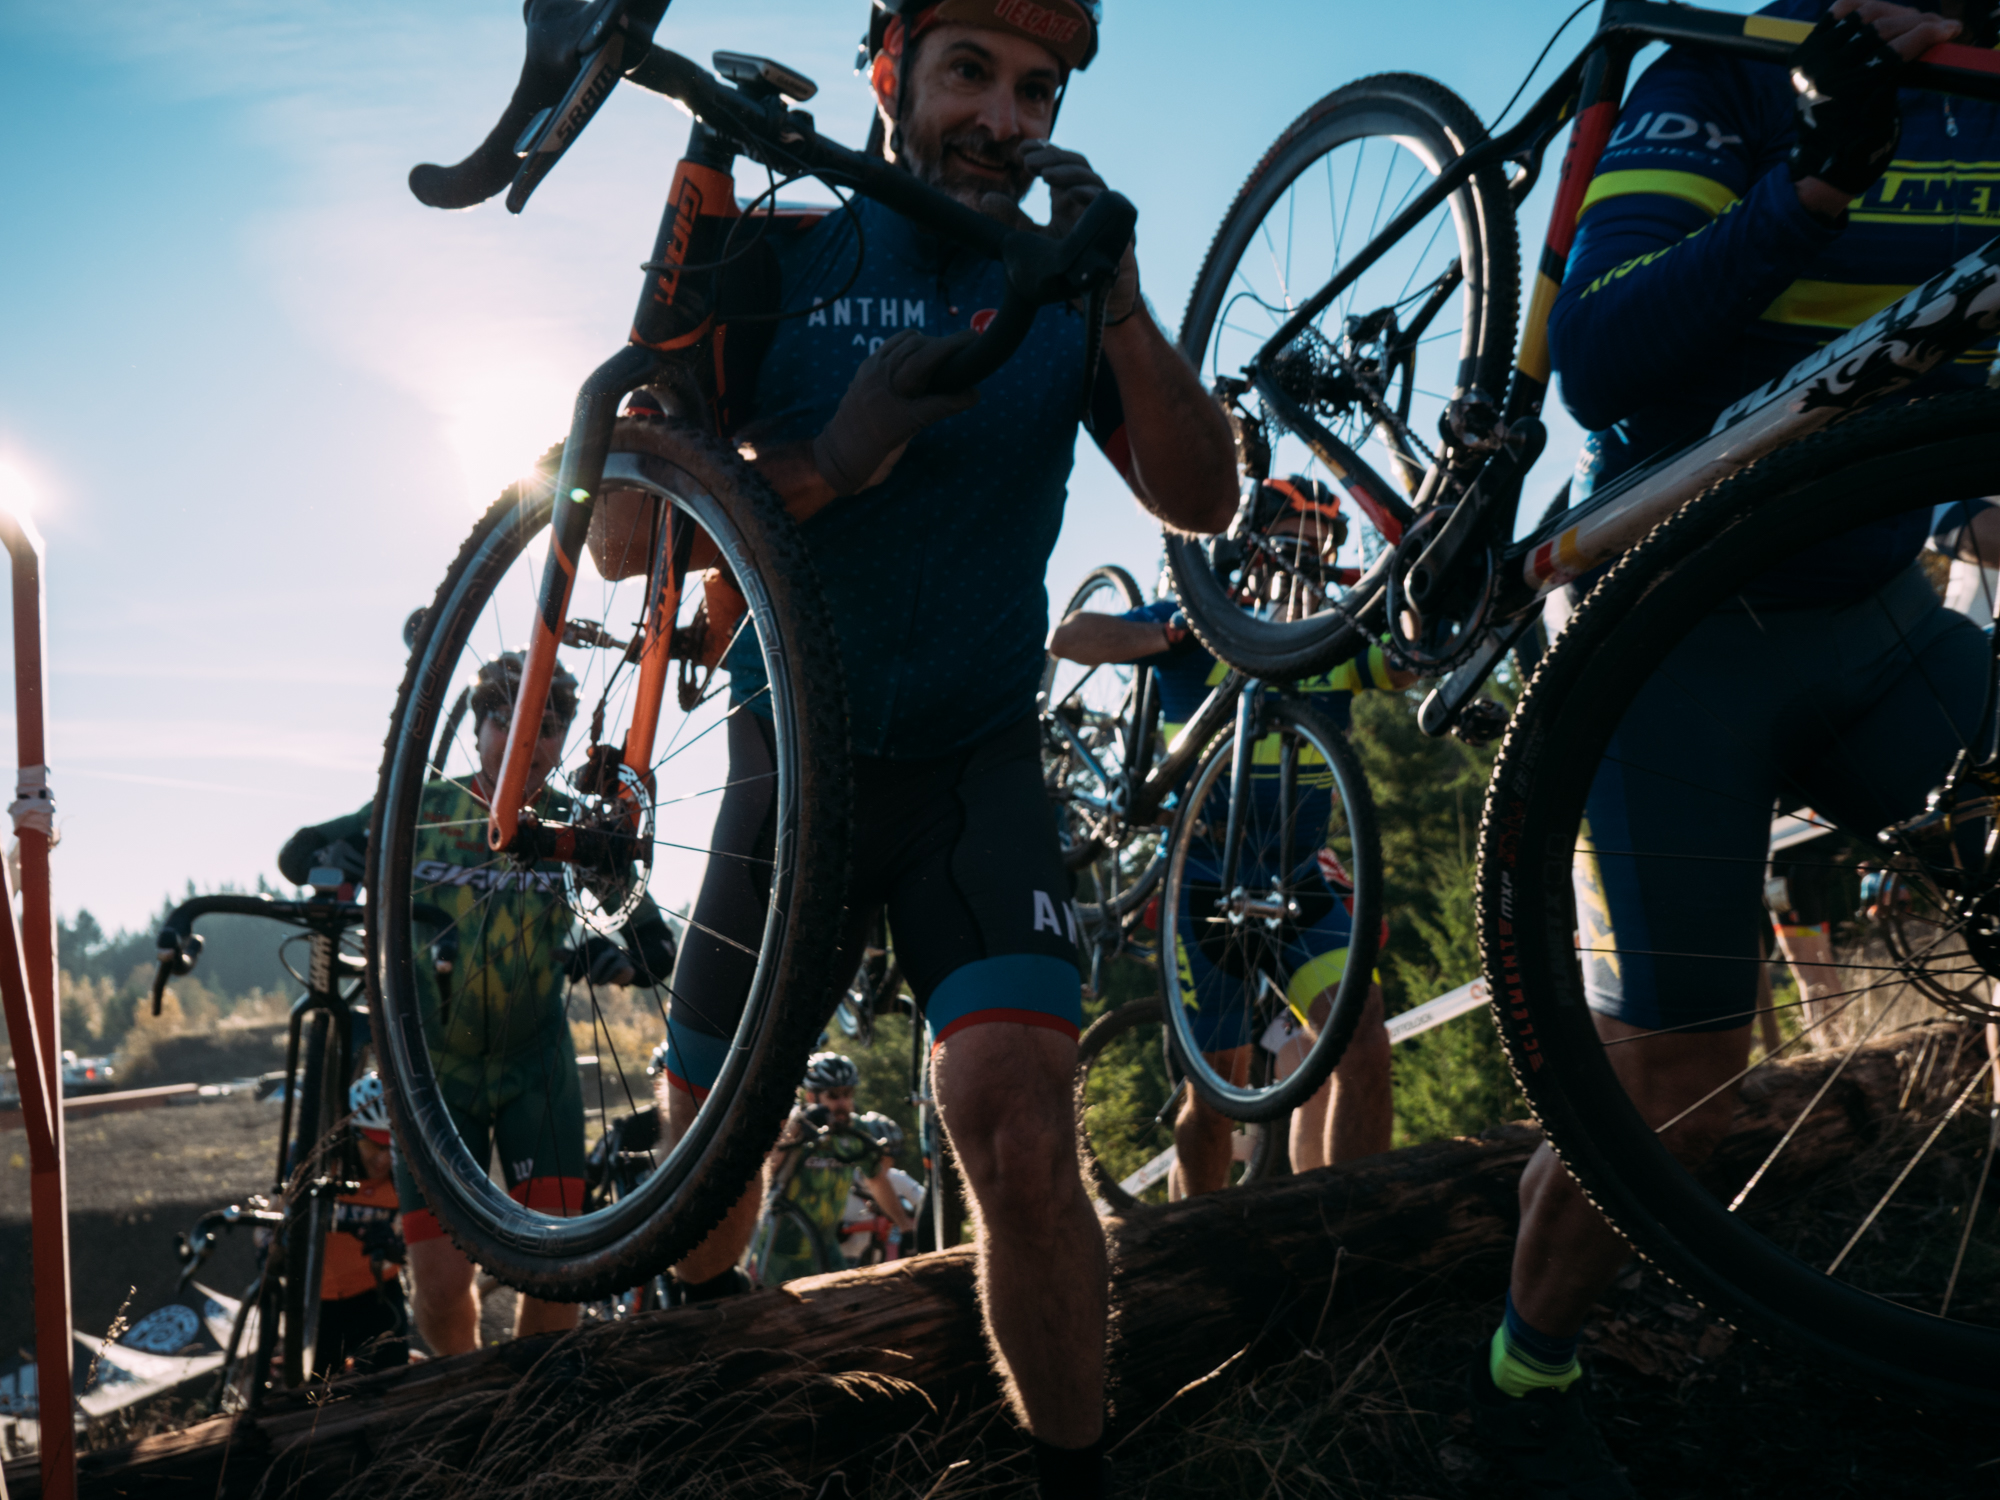 Cyclocross18_CCCX_BartonPark-mettlecycling29.jpg